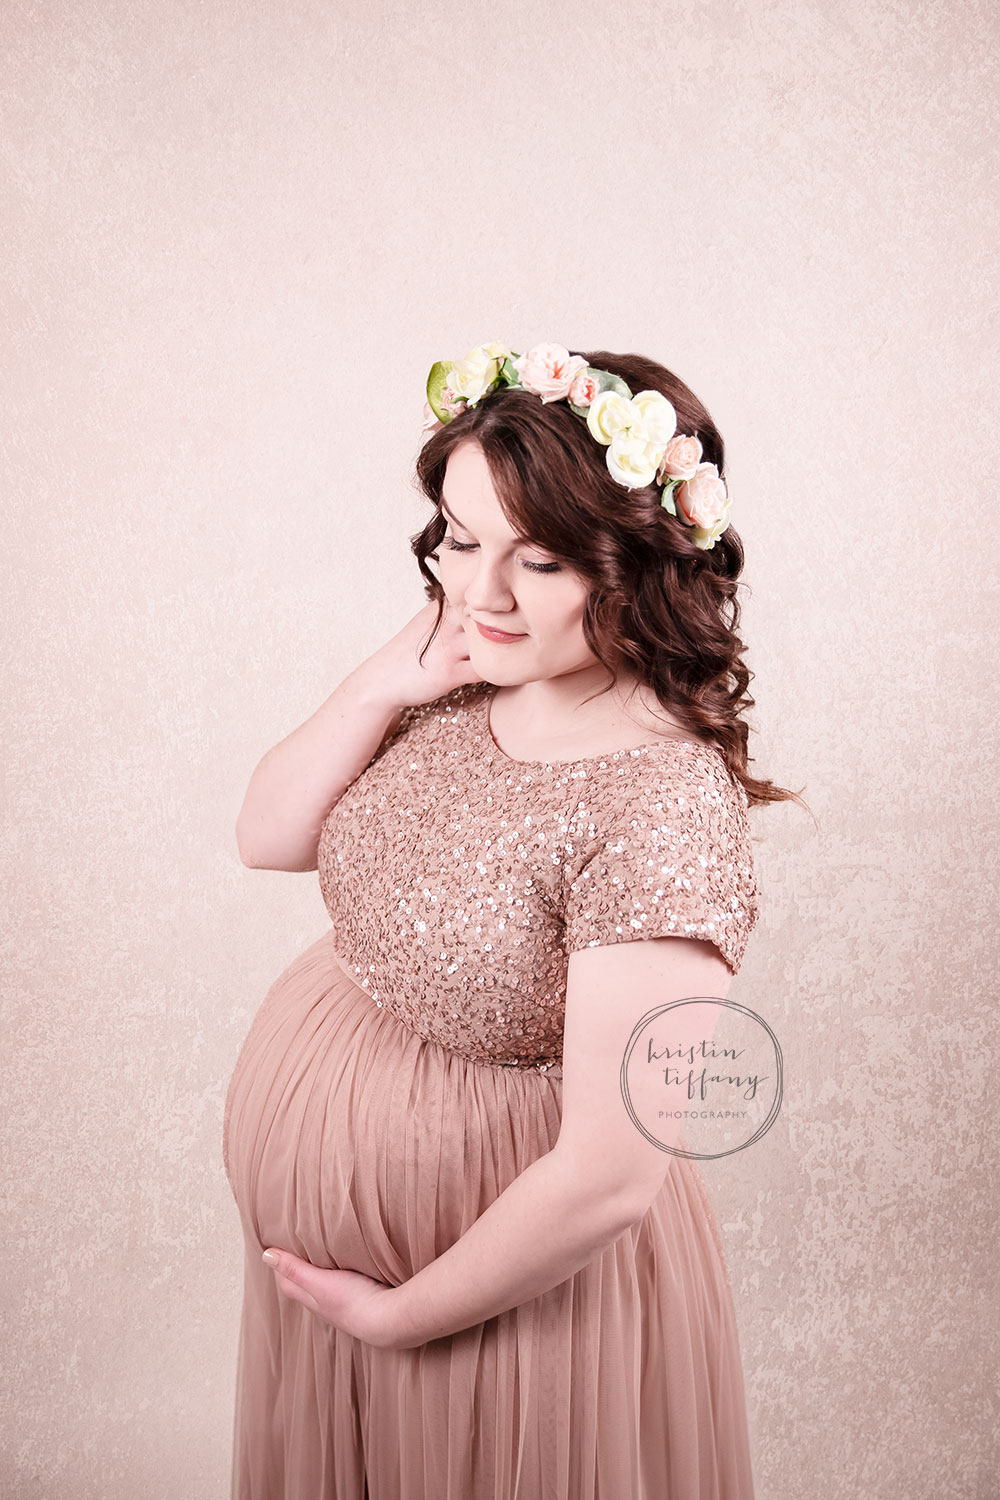 a maternity photo of a woman in a pretty dress